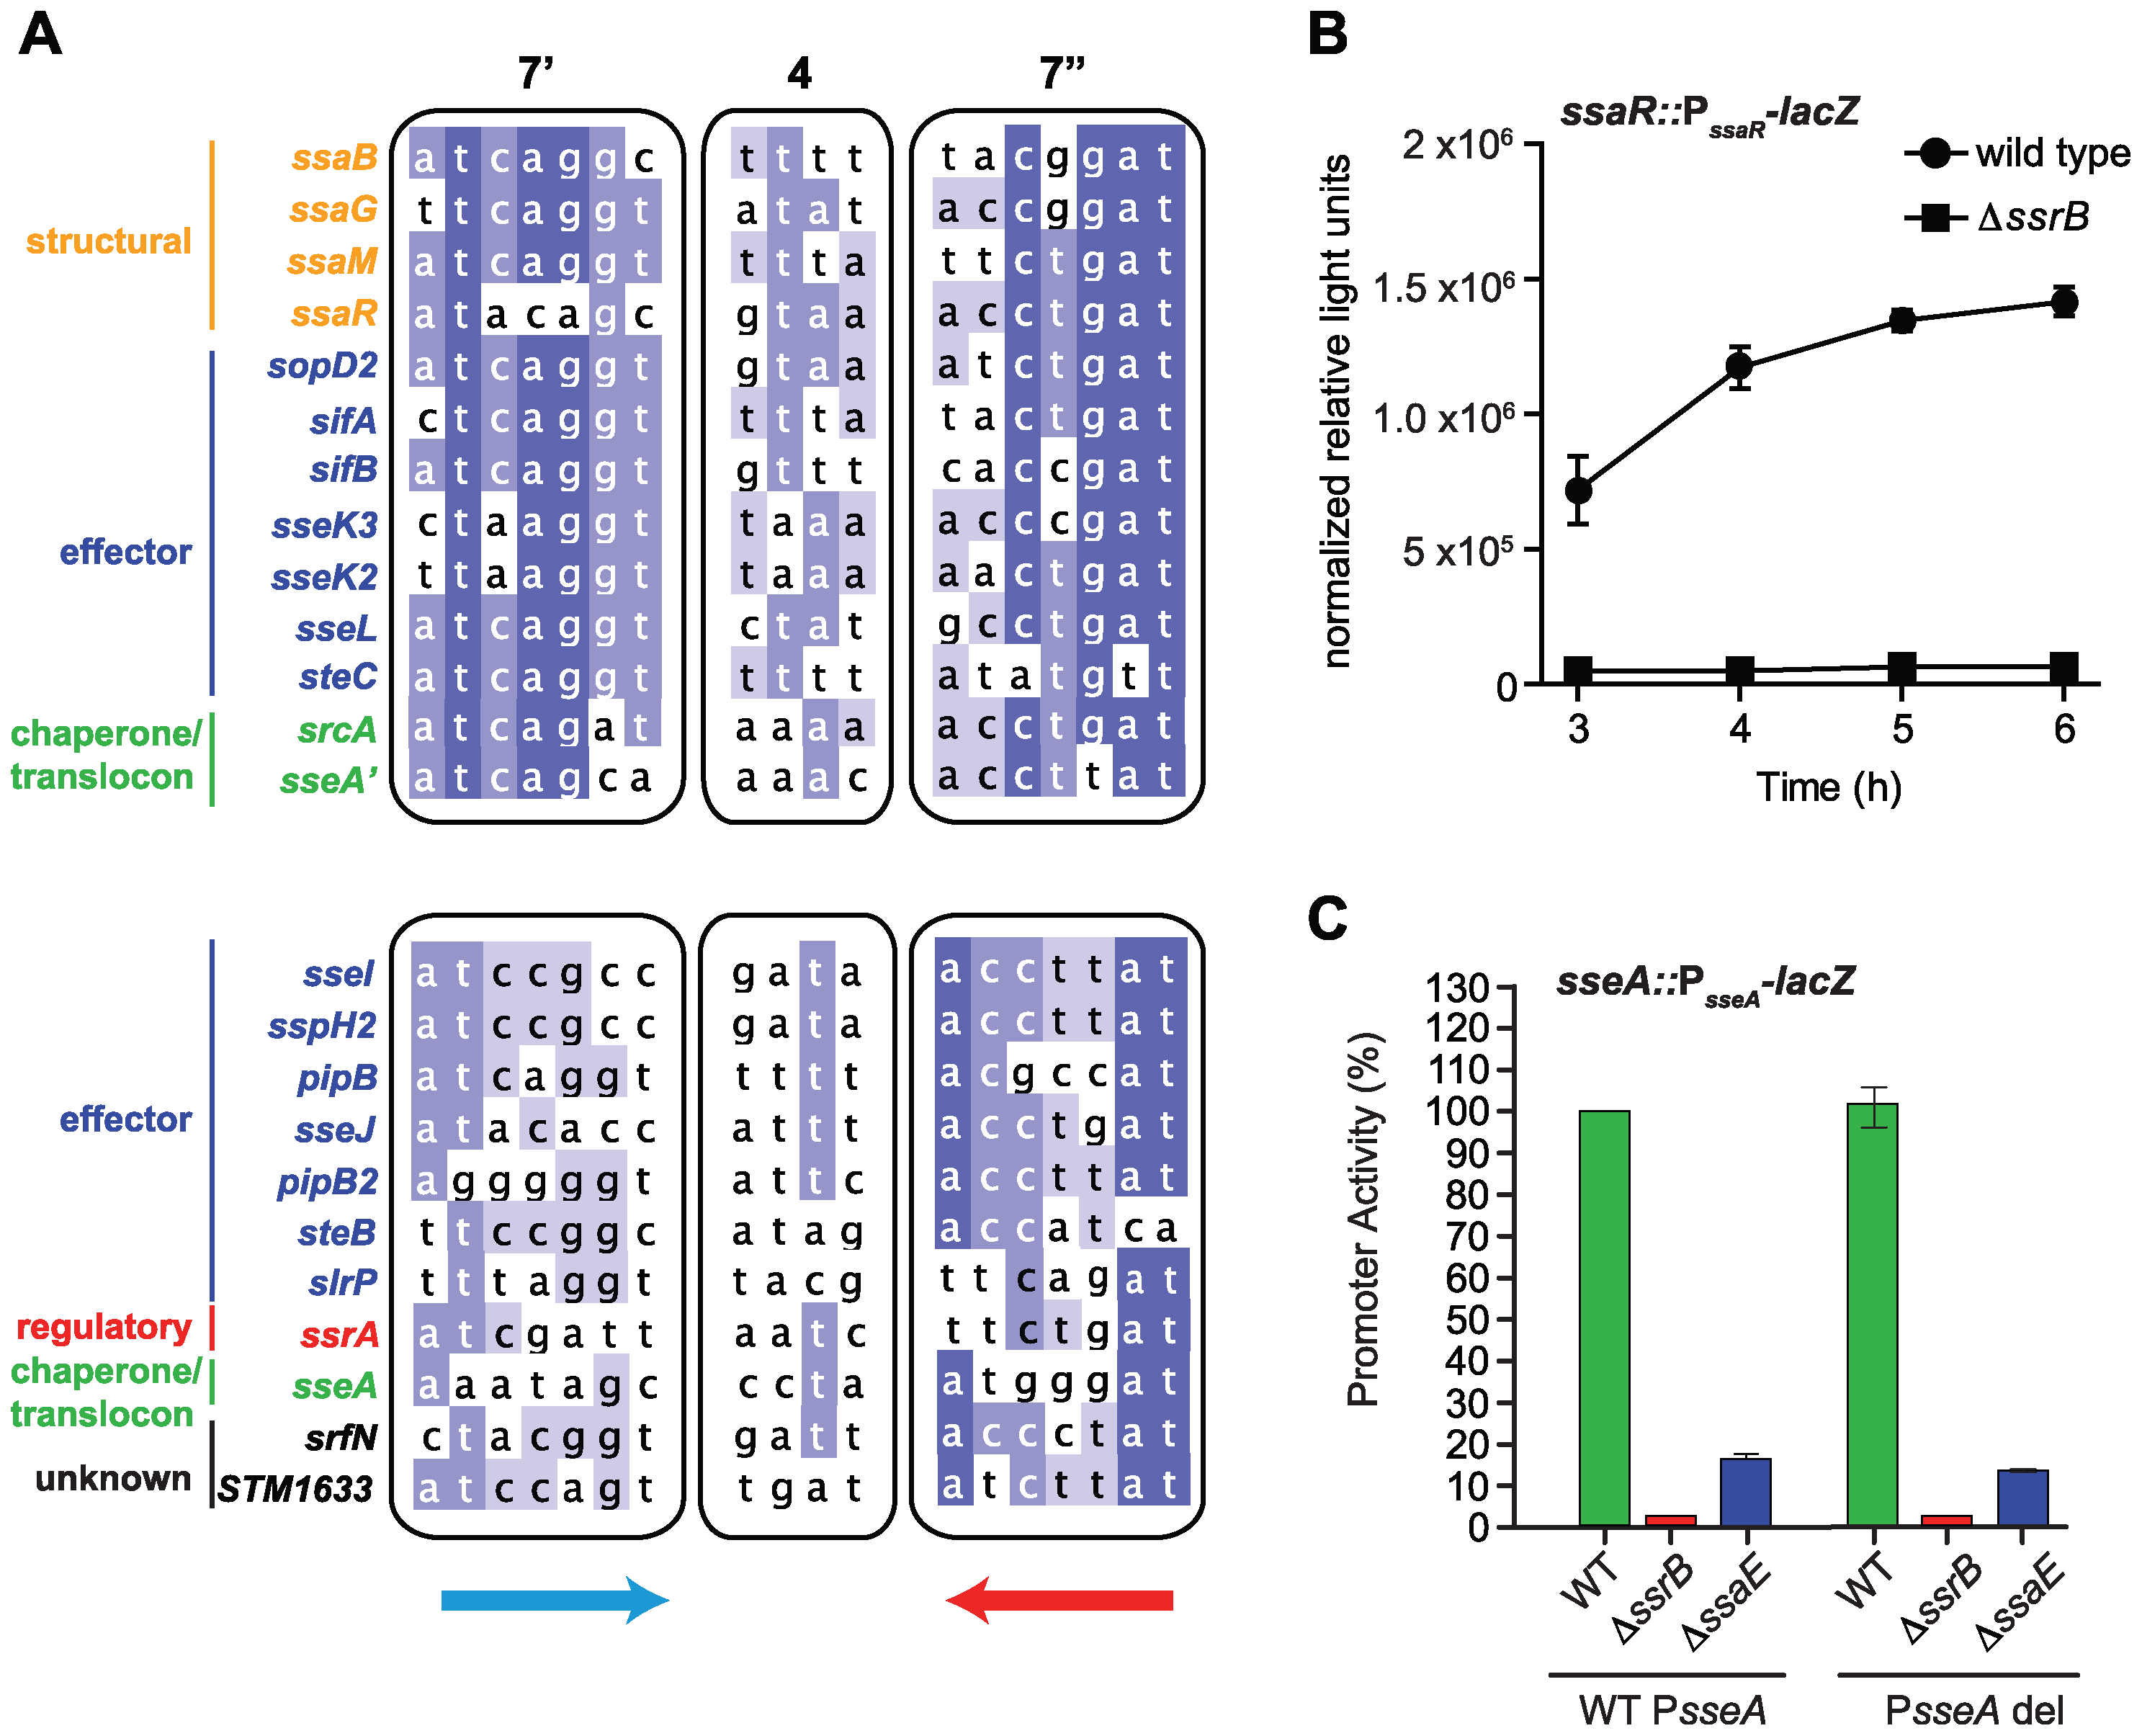 Genome-wide identification of SsrB palindrome sequences.